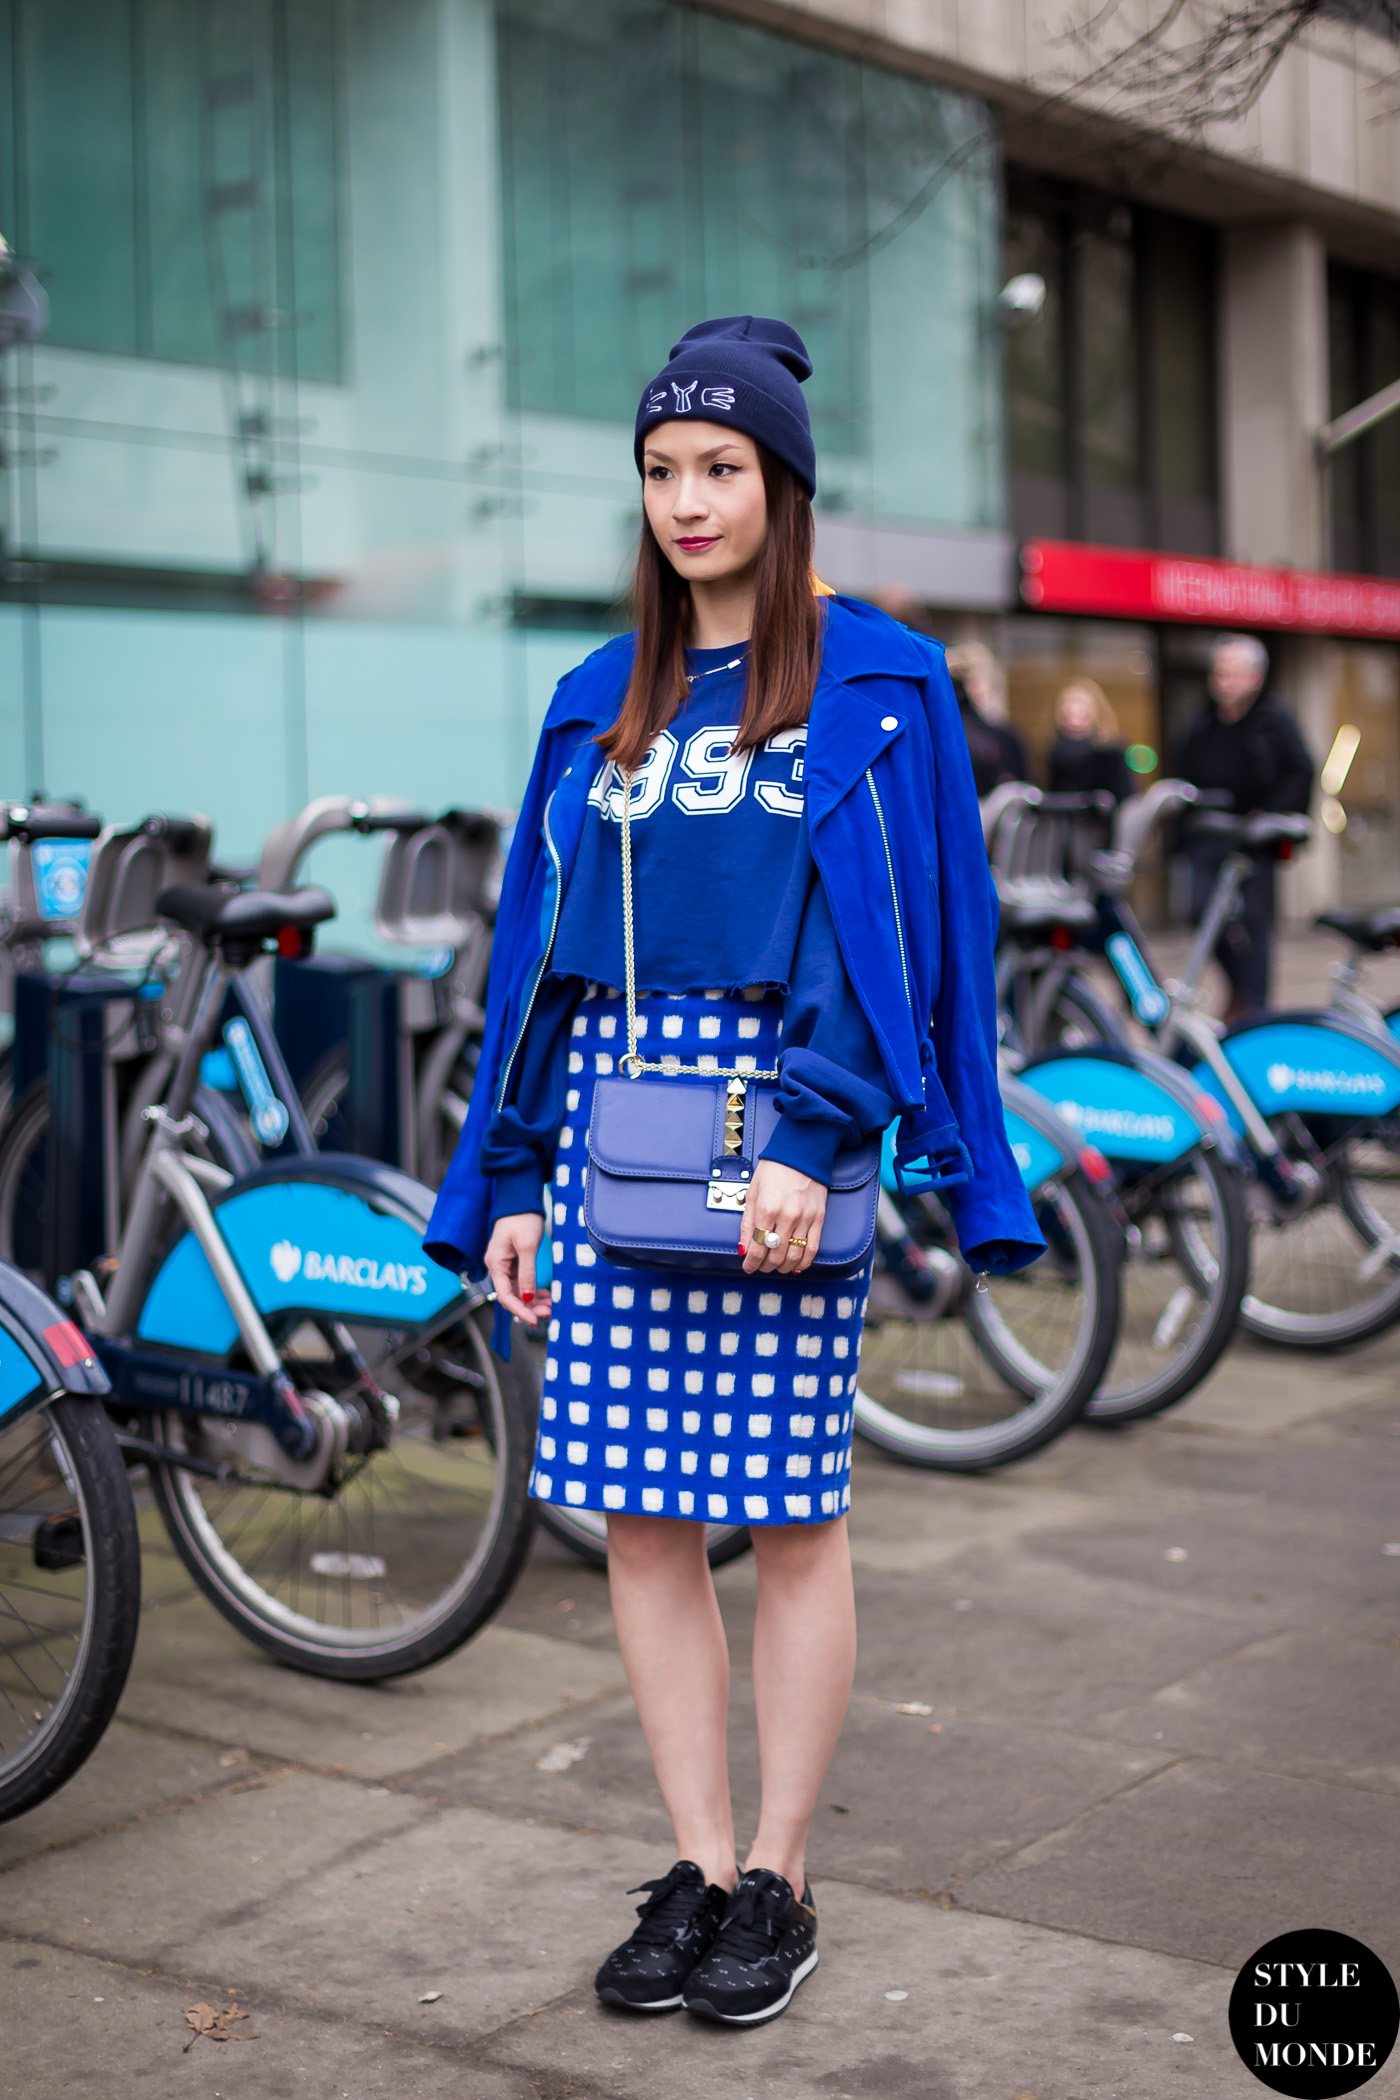 Tracey Cheng Street Style Street Fashion by STYLEDUMONDE Street Style Fashion Blog